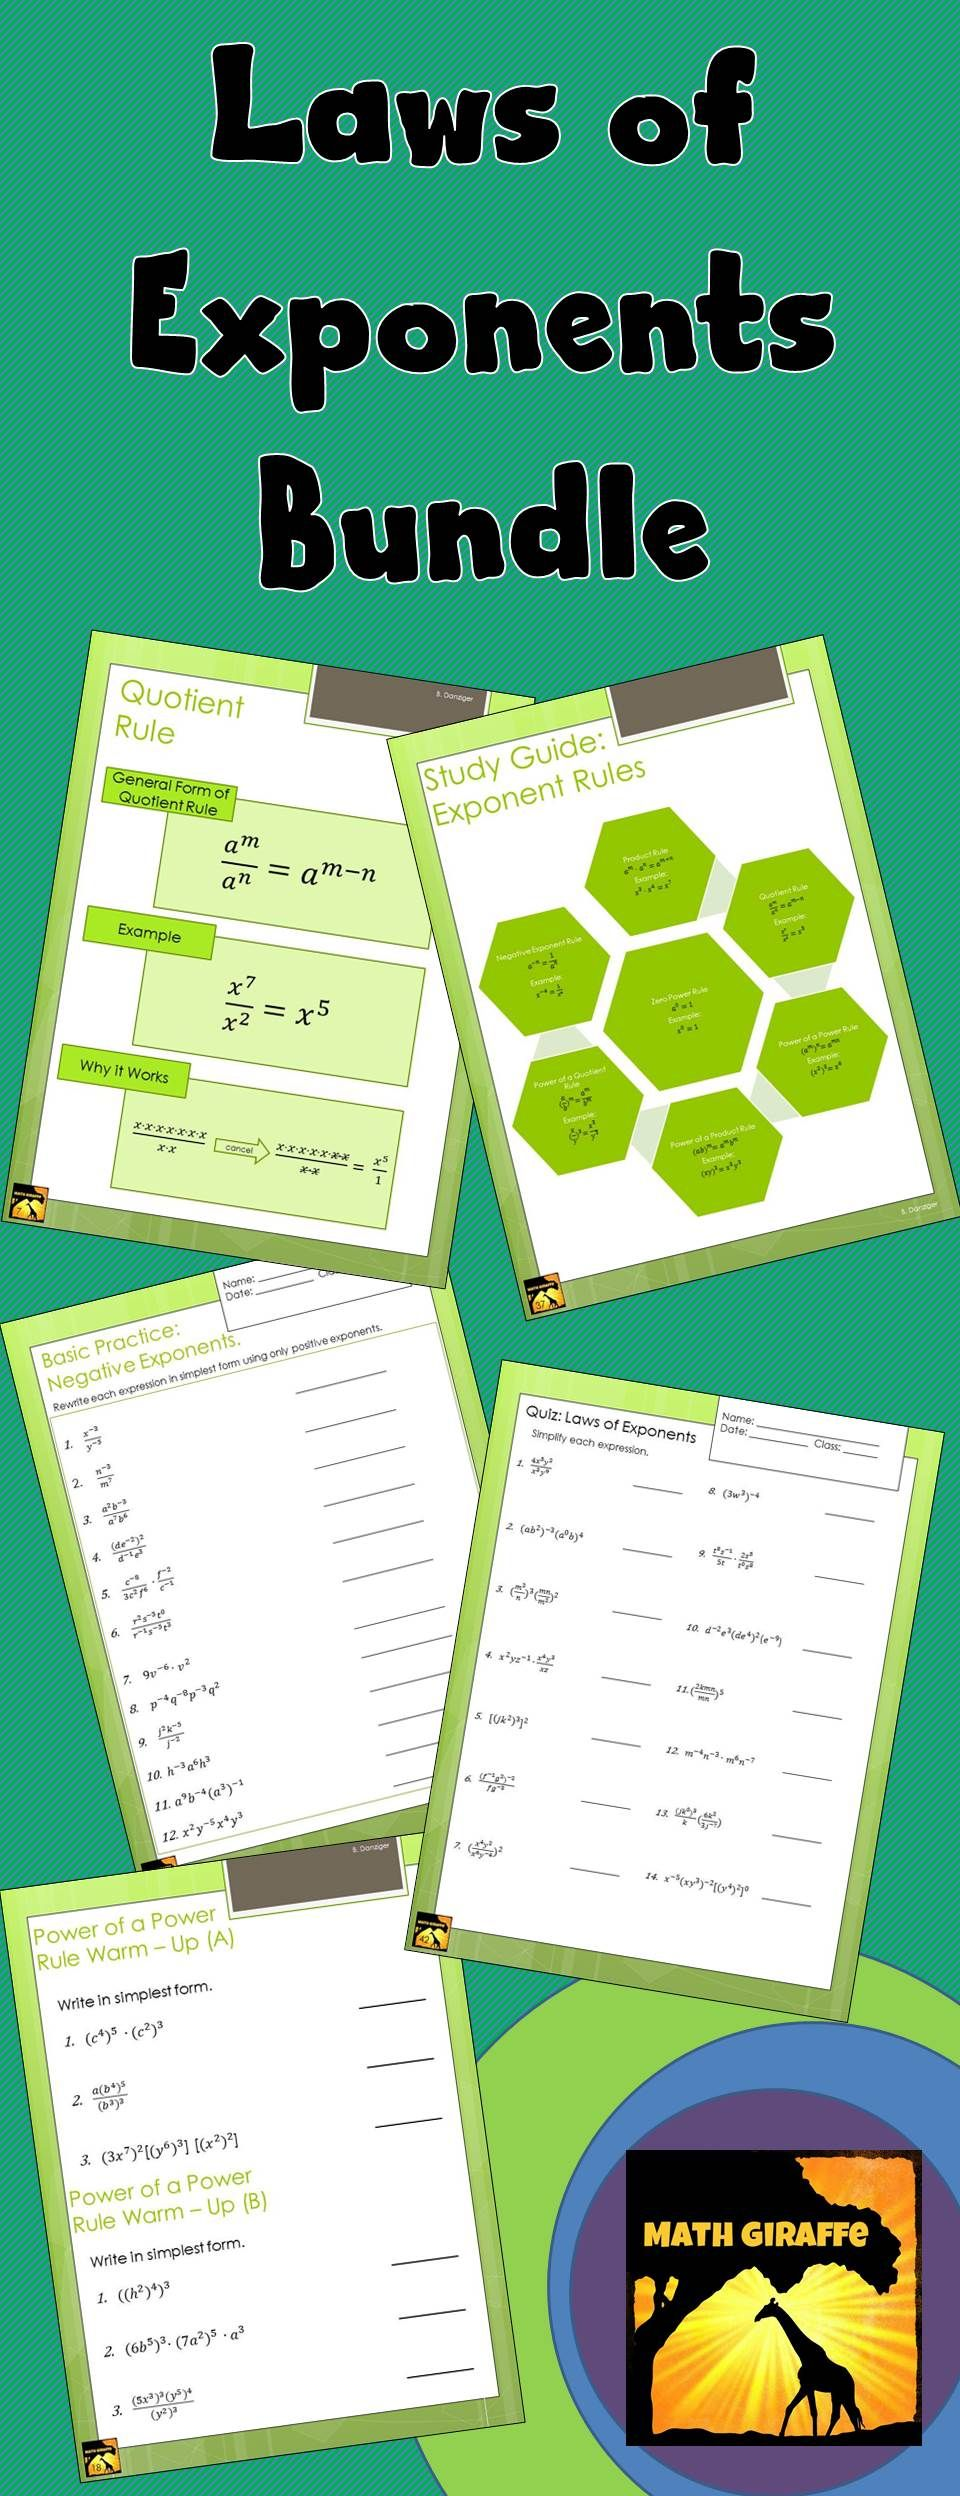 Wow Tons of math worksheets for every grade every topic – Product and Quotient Rule Worksheet